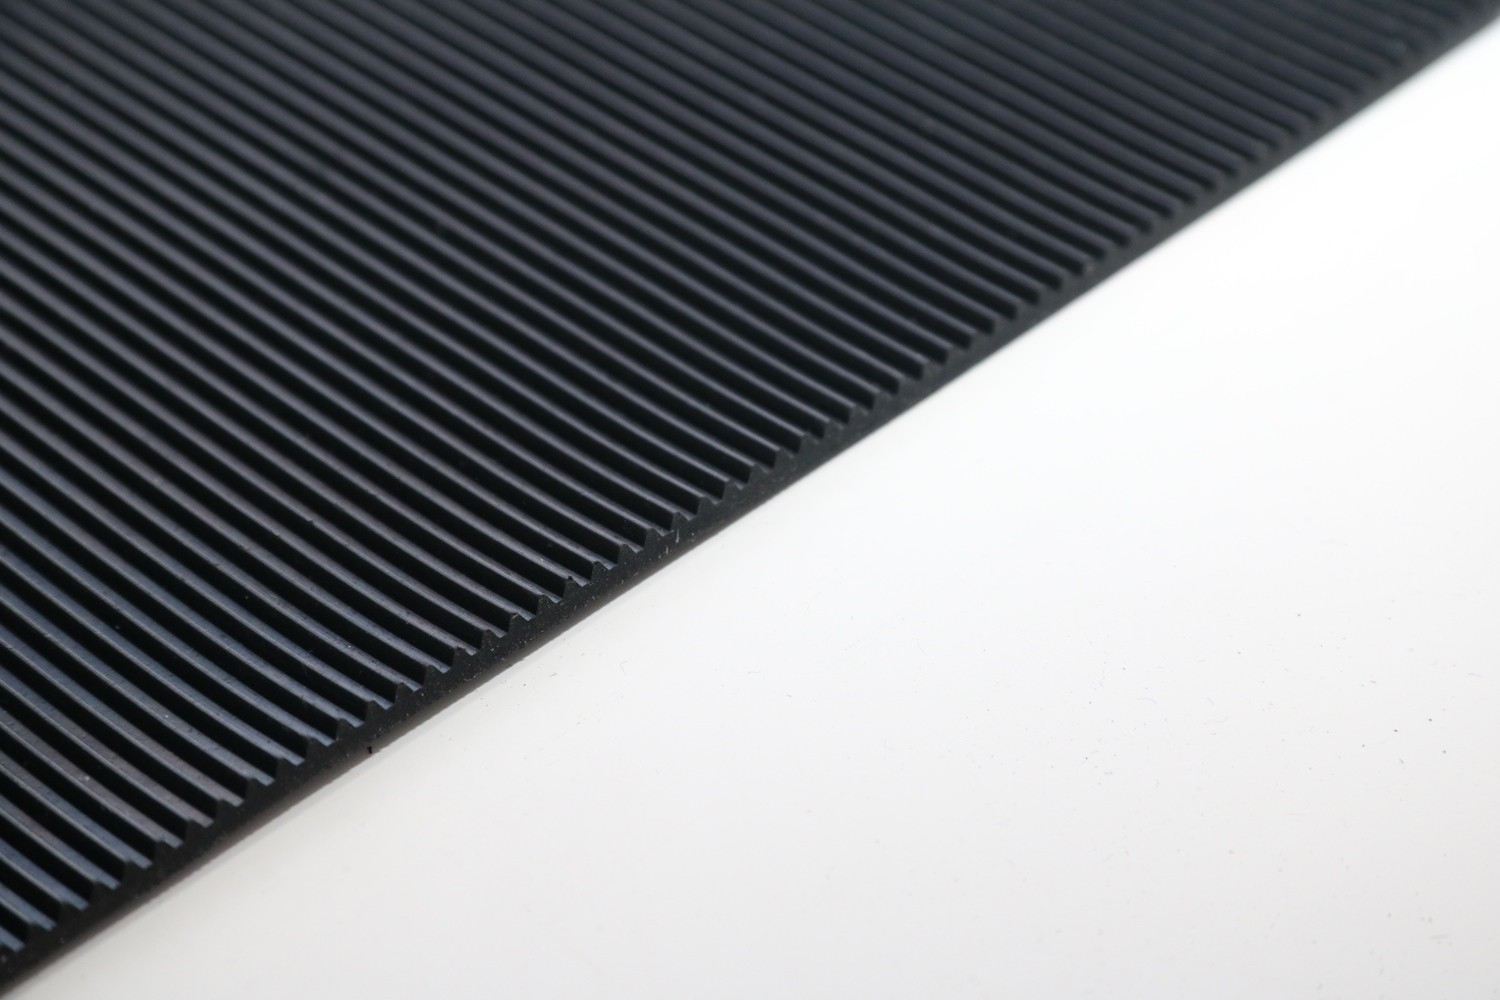 Ribbed rubber 1000